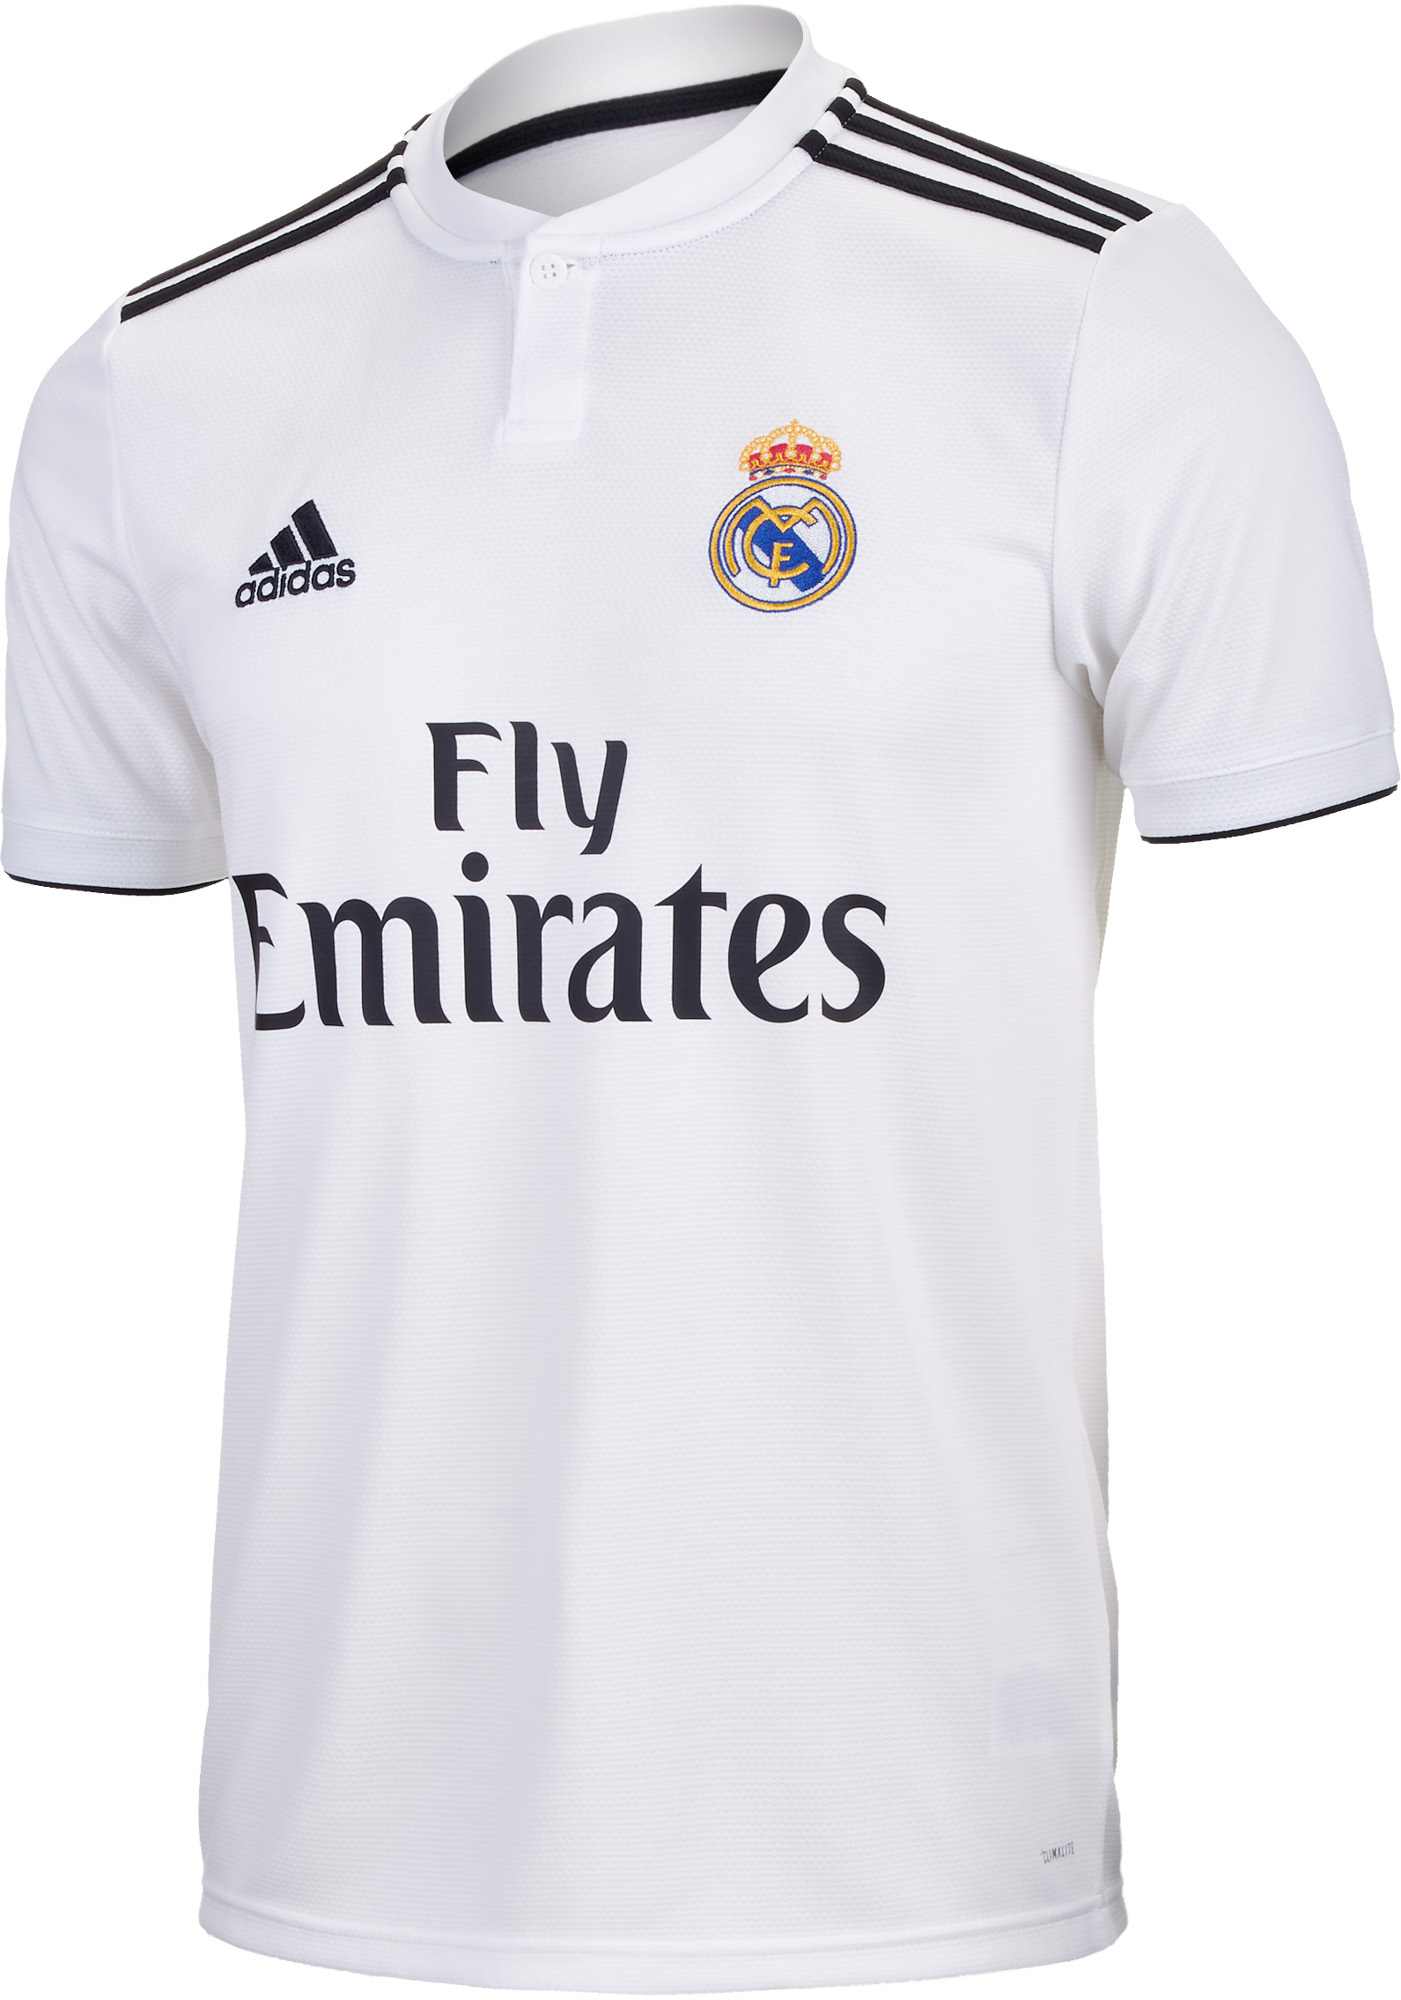 sale retailer 7c639 a8df6 adidas Real Madrid Home Jersey - Youth 2018-19 - SoccerPro